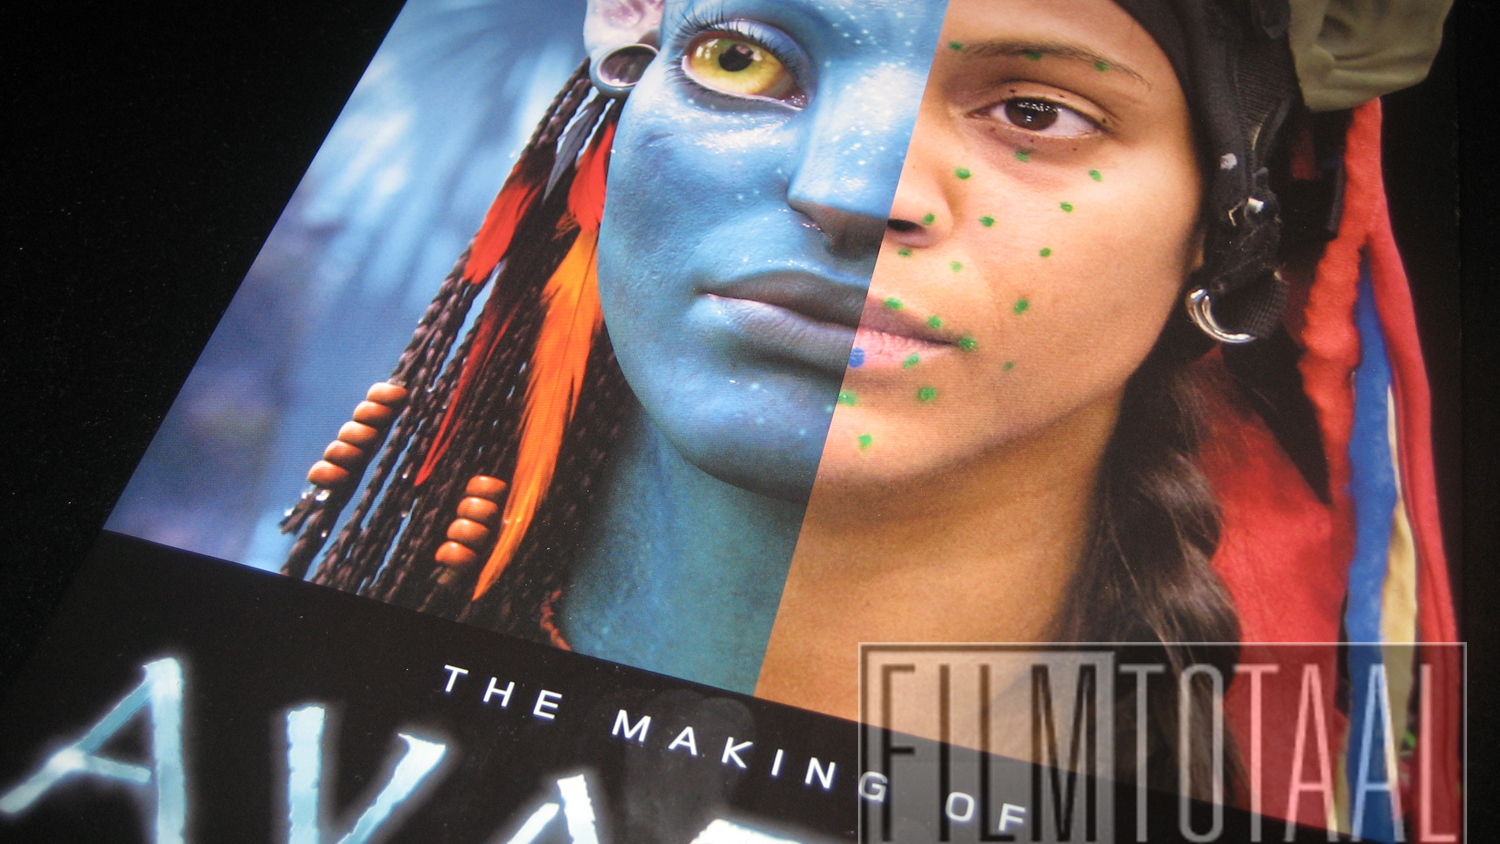 Fraai boek - The Making of Avatar